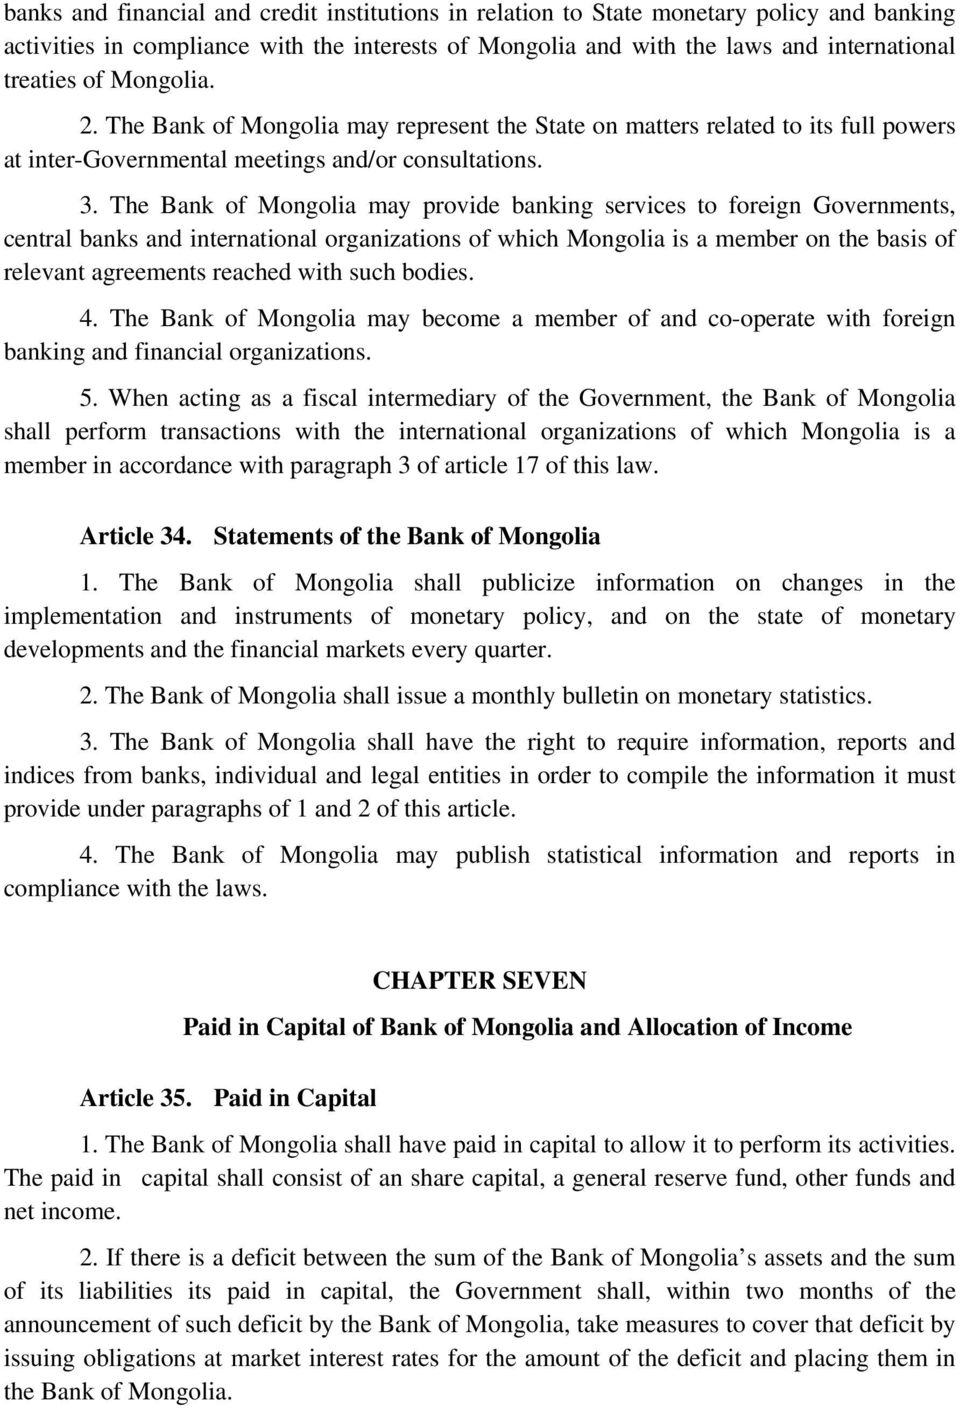 The Bank of Mongolia may provide banking services to foreign Governments, central banks and international organizations of which Mongolia is a member on the basis of relevant agreements reached with